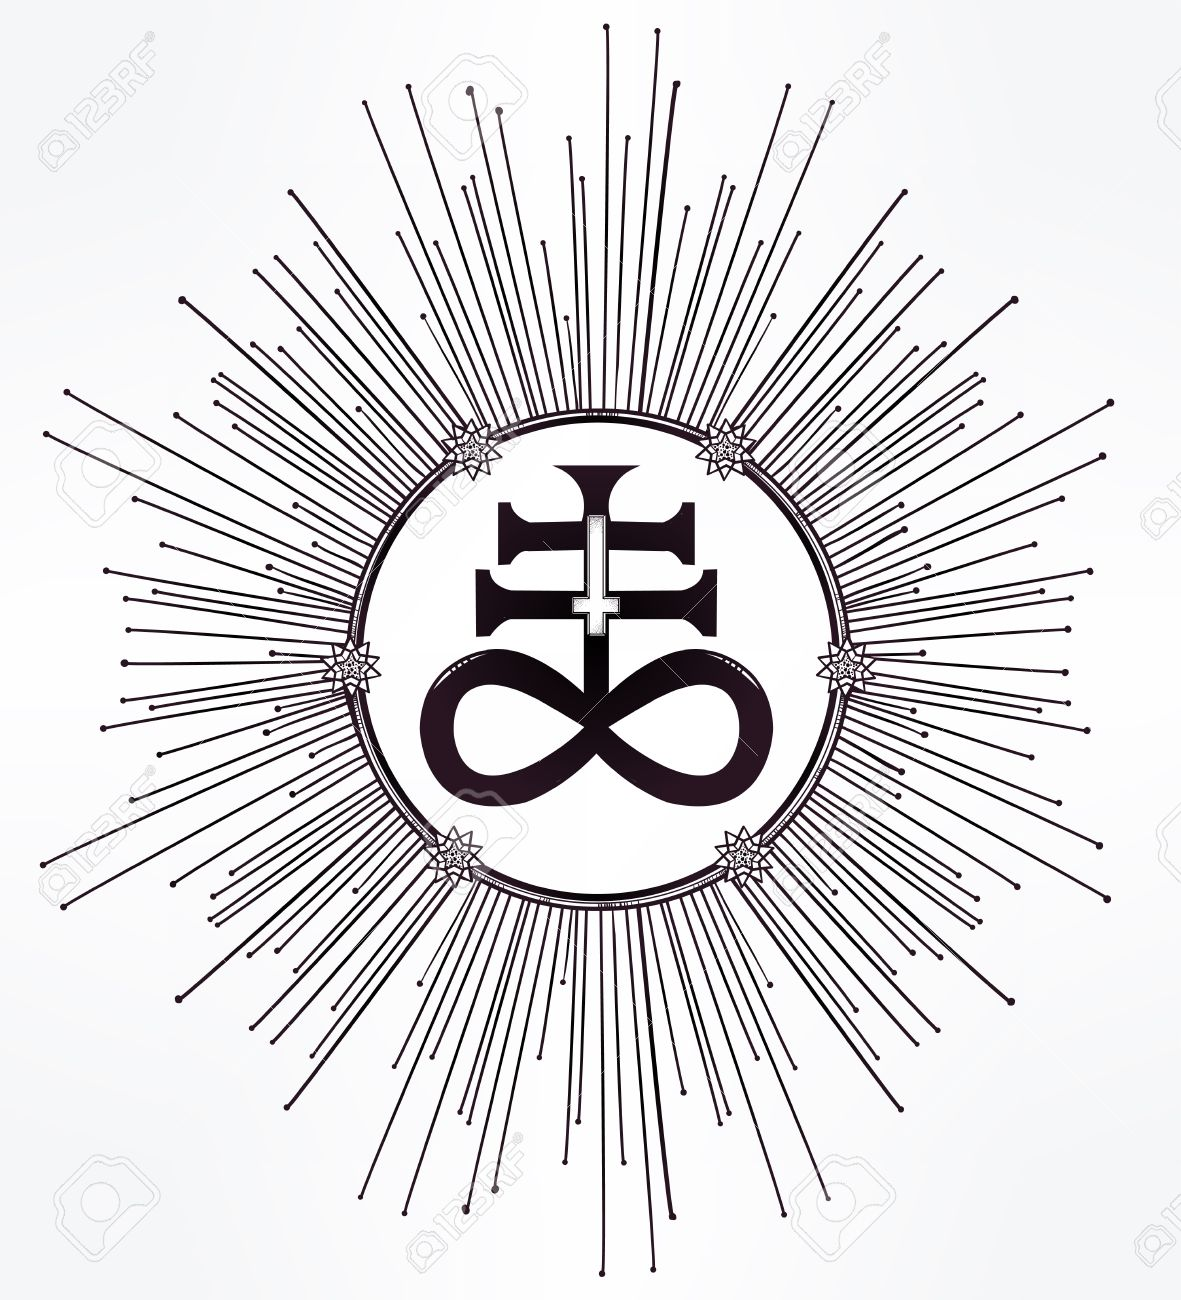 The satanic cross also known as the leviathan cross a variation the satanic cross also known as the leviathan cross a variation of the alchemical symbol biocorpaavc